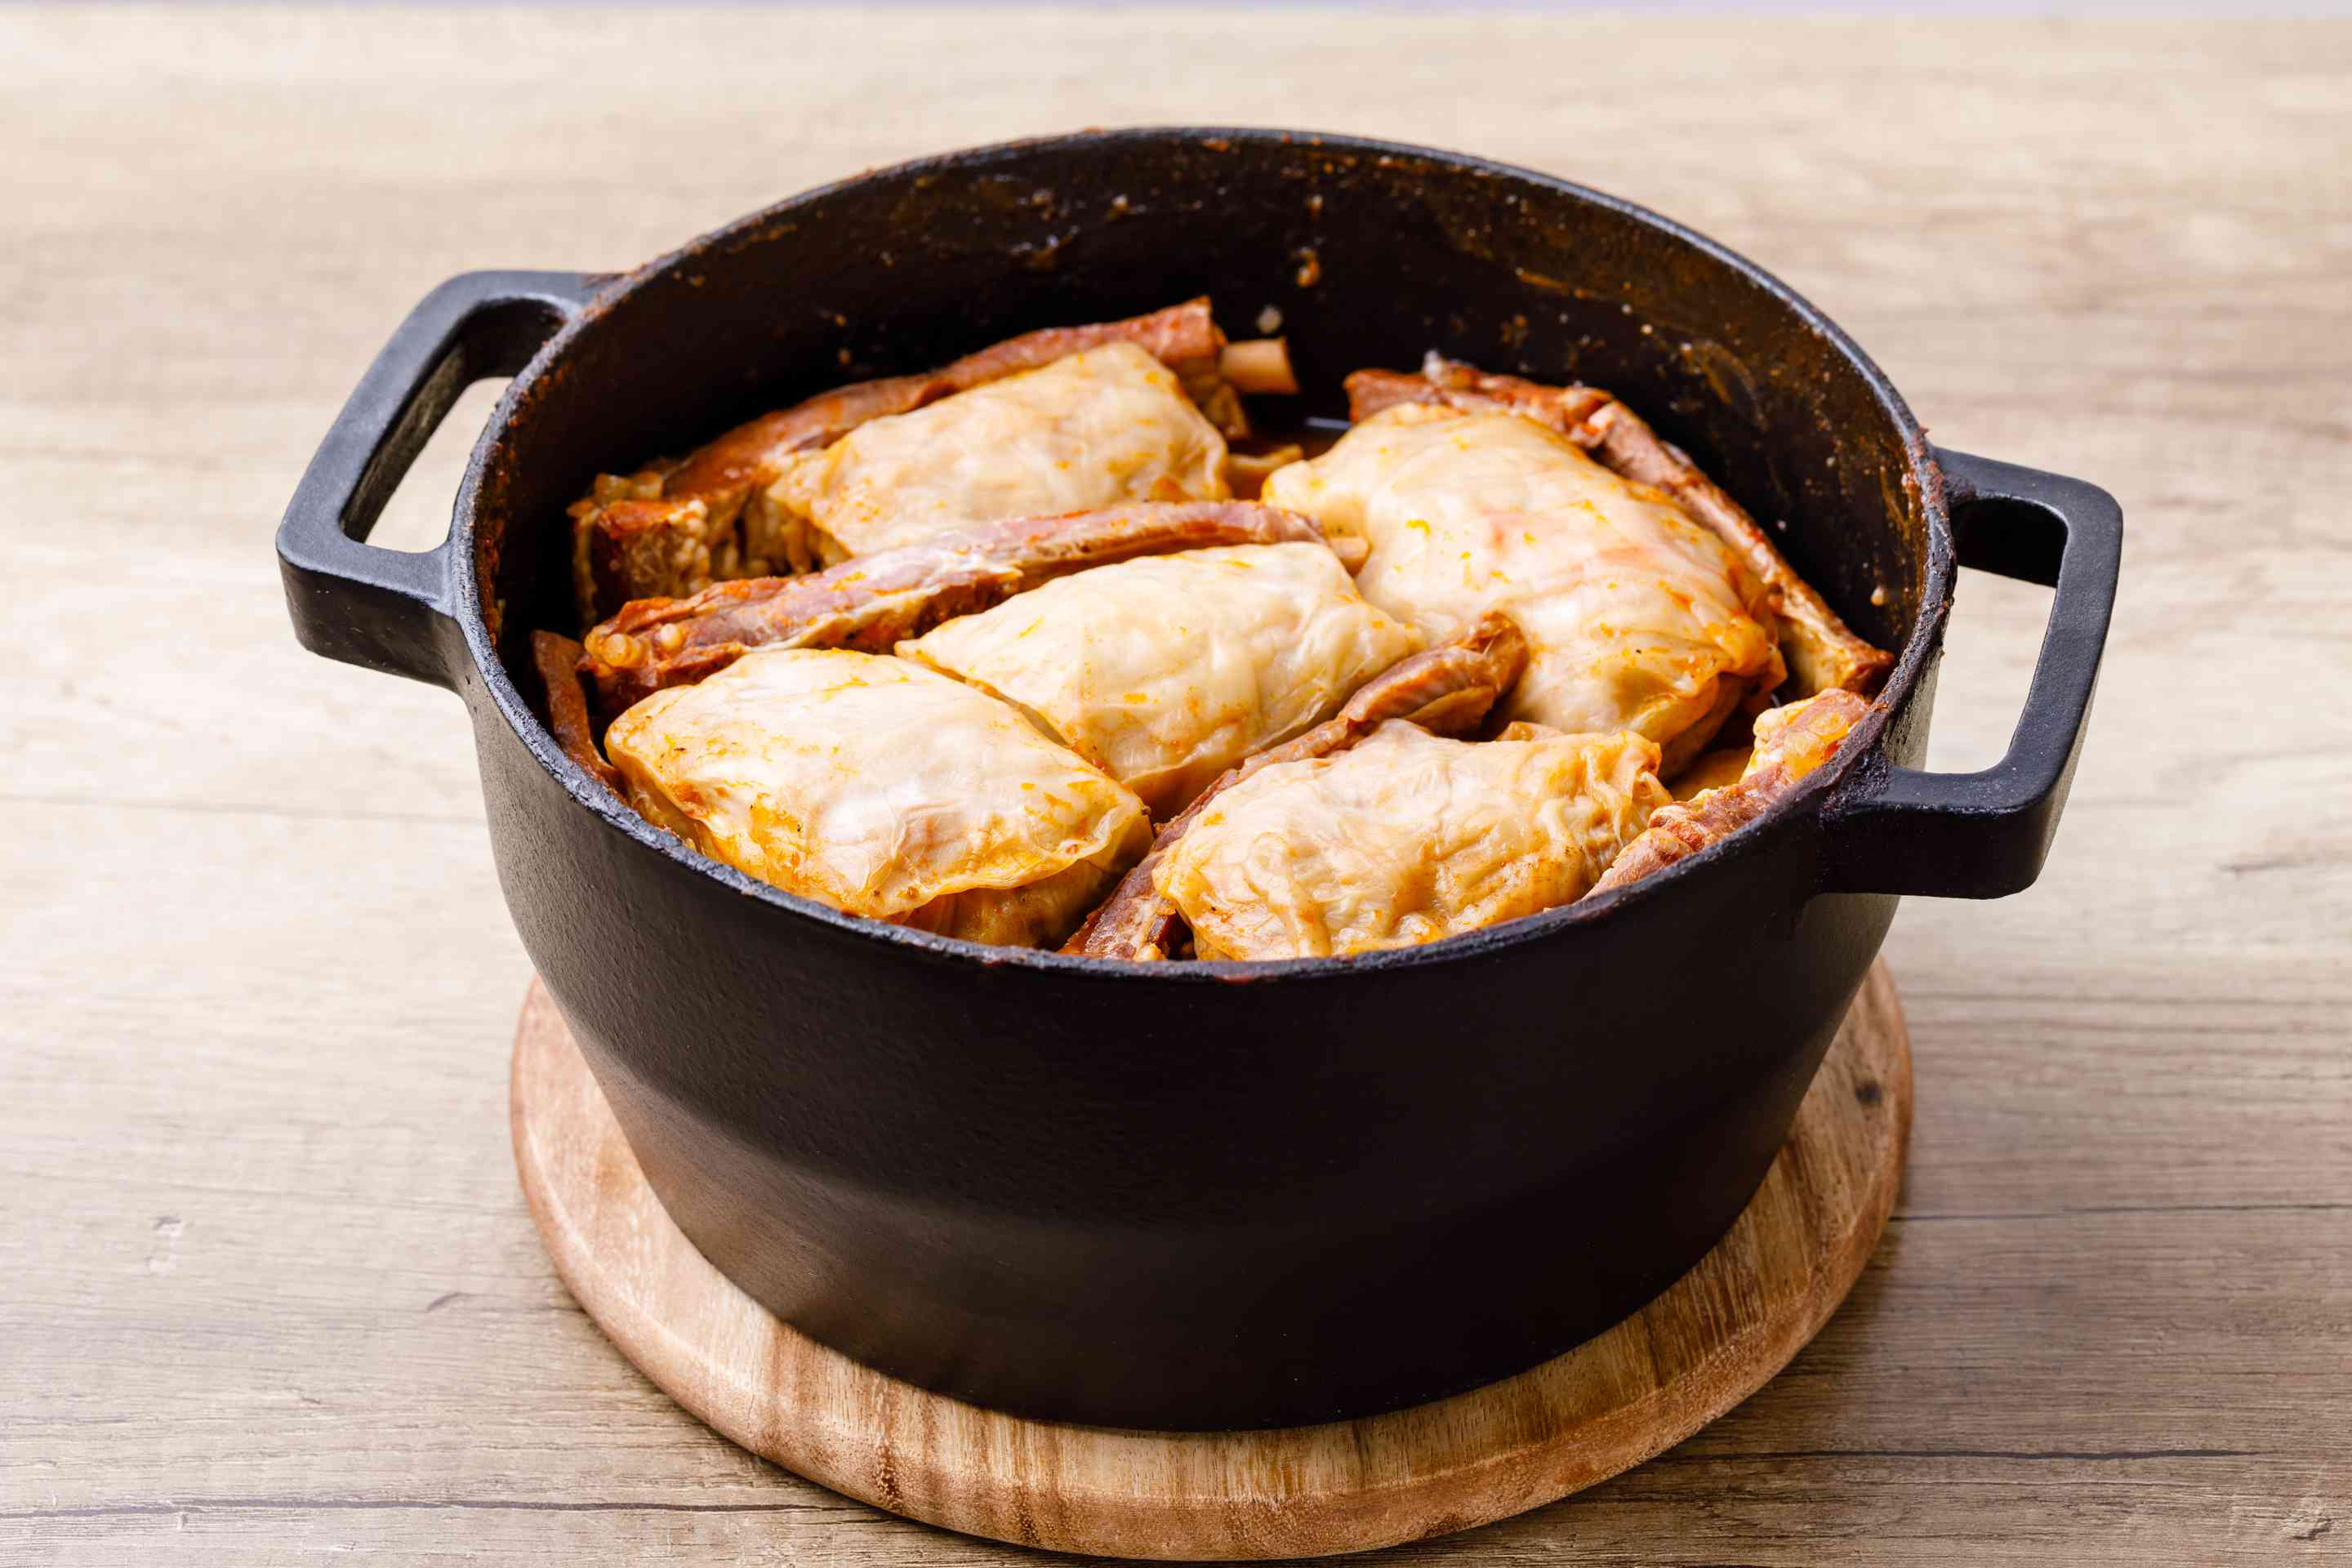 Cabbage rolls and ribs in a pot with leaves removed